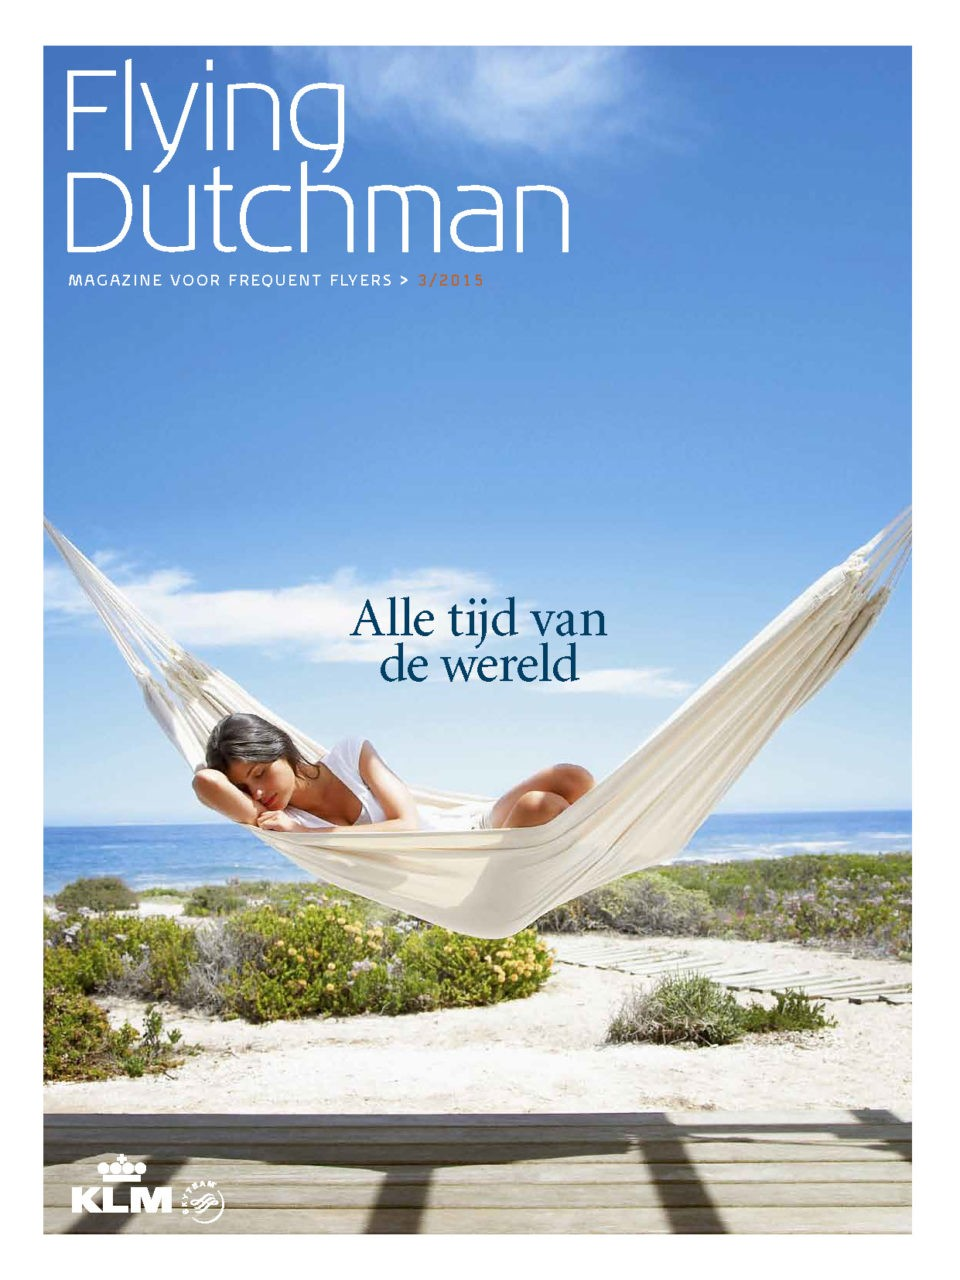 https://www.saota.com/wp-content/uploads/2018/01/SAOTA_ARRCC_OKA__NL_KLM-The-Flying-Dutchman_Silver-Bay-Villa_Wereldnieuws-cover.jpg